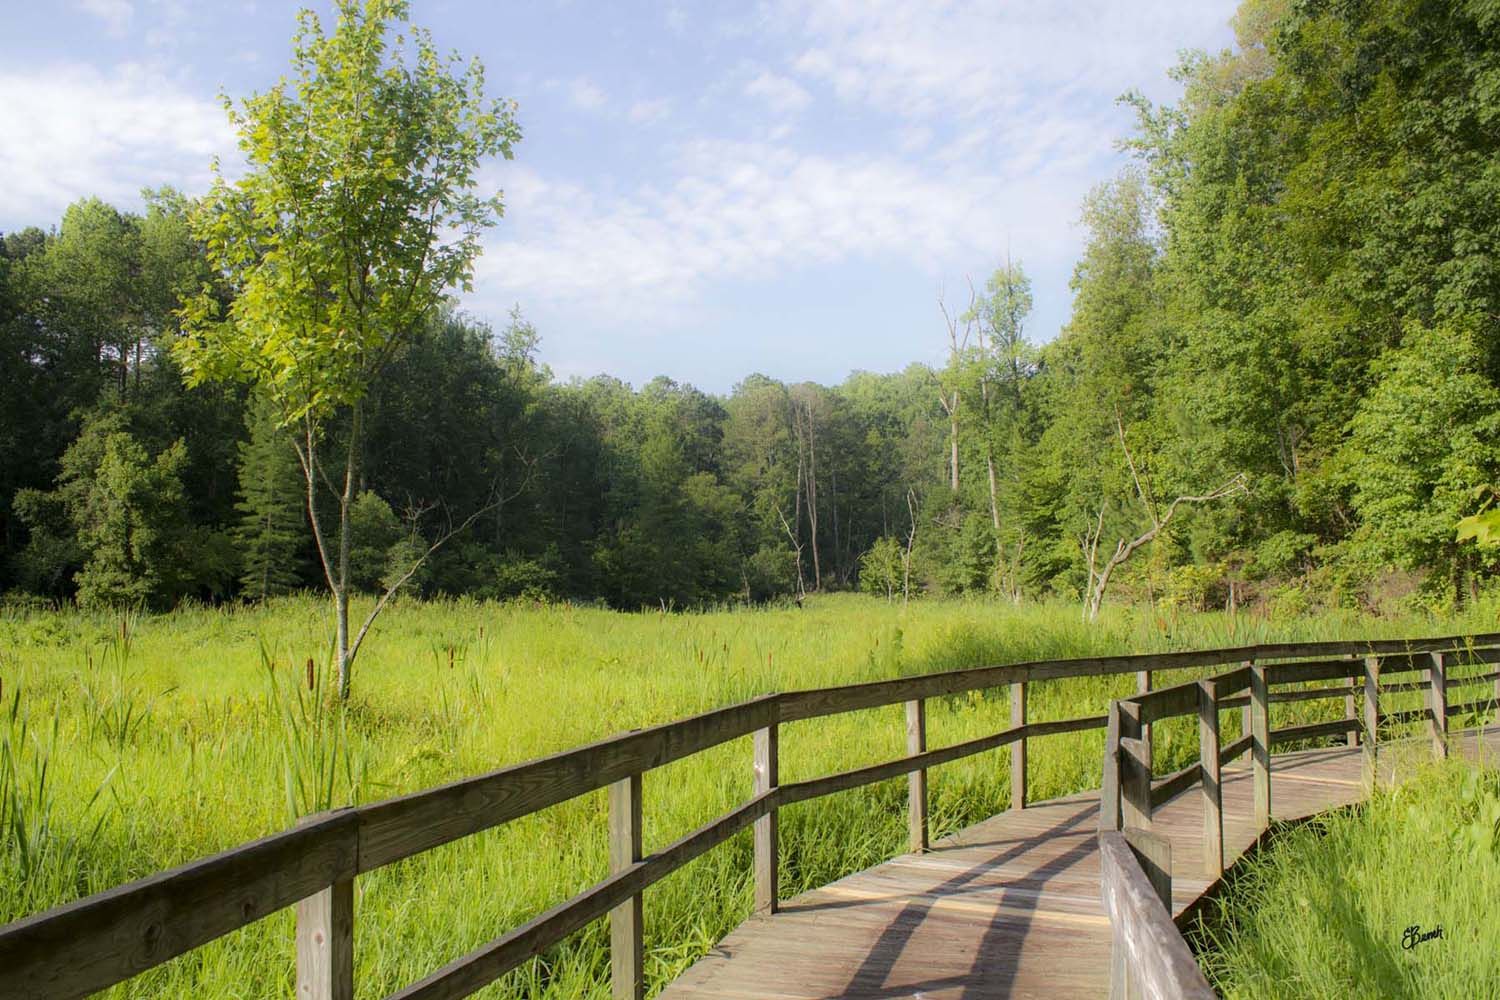 Image is of a wooden boardwalk trail that turns to the right. The rails are farm fence style. It is summer and the boardwalk is surrounded in cattails and there are green trees in the distance. The sky is blue with some white clouds.